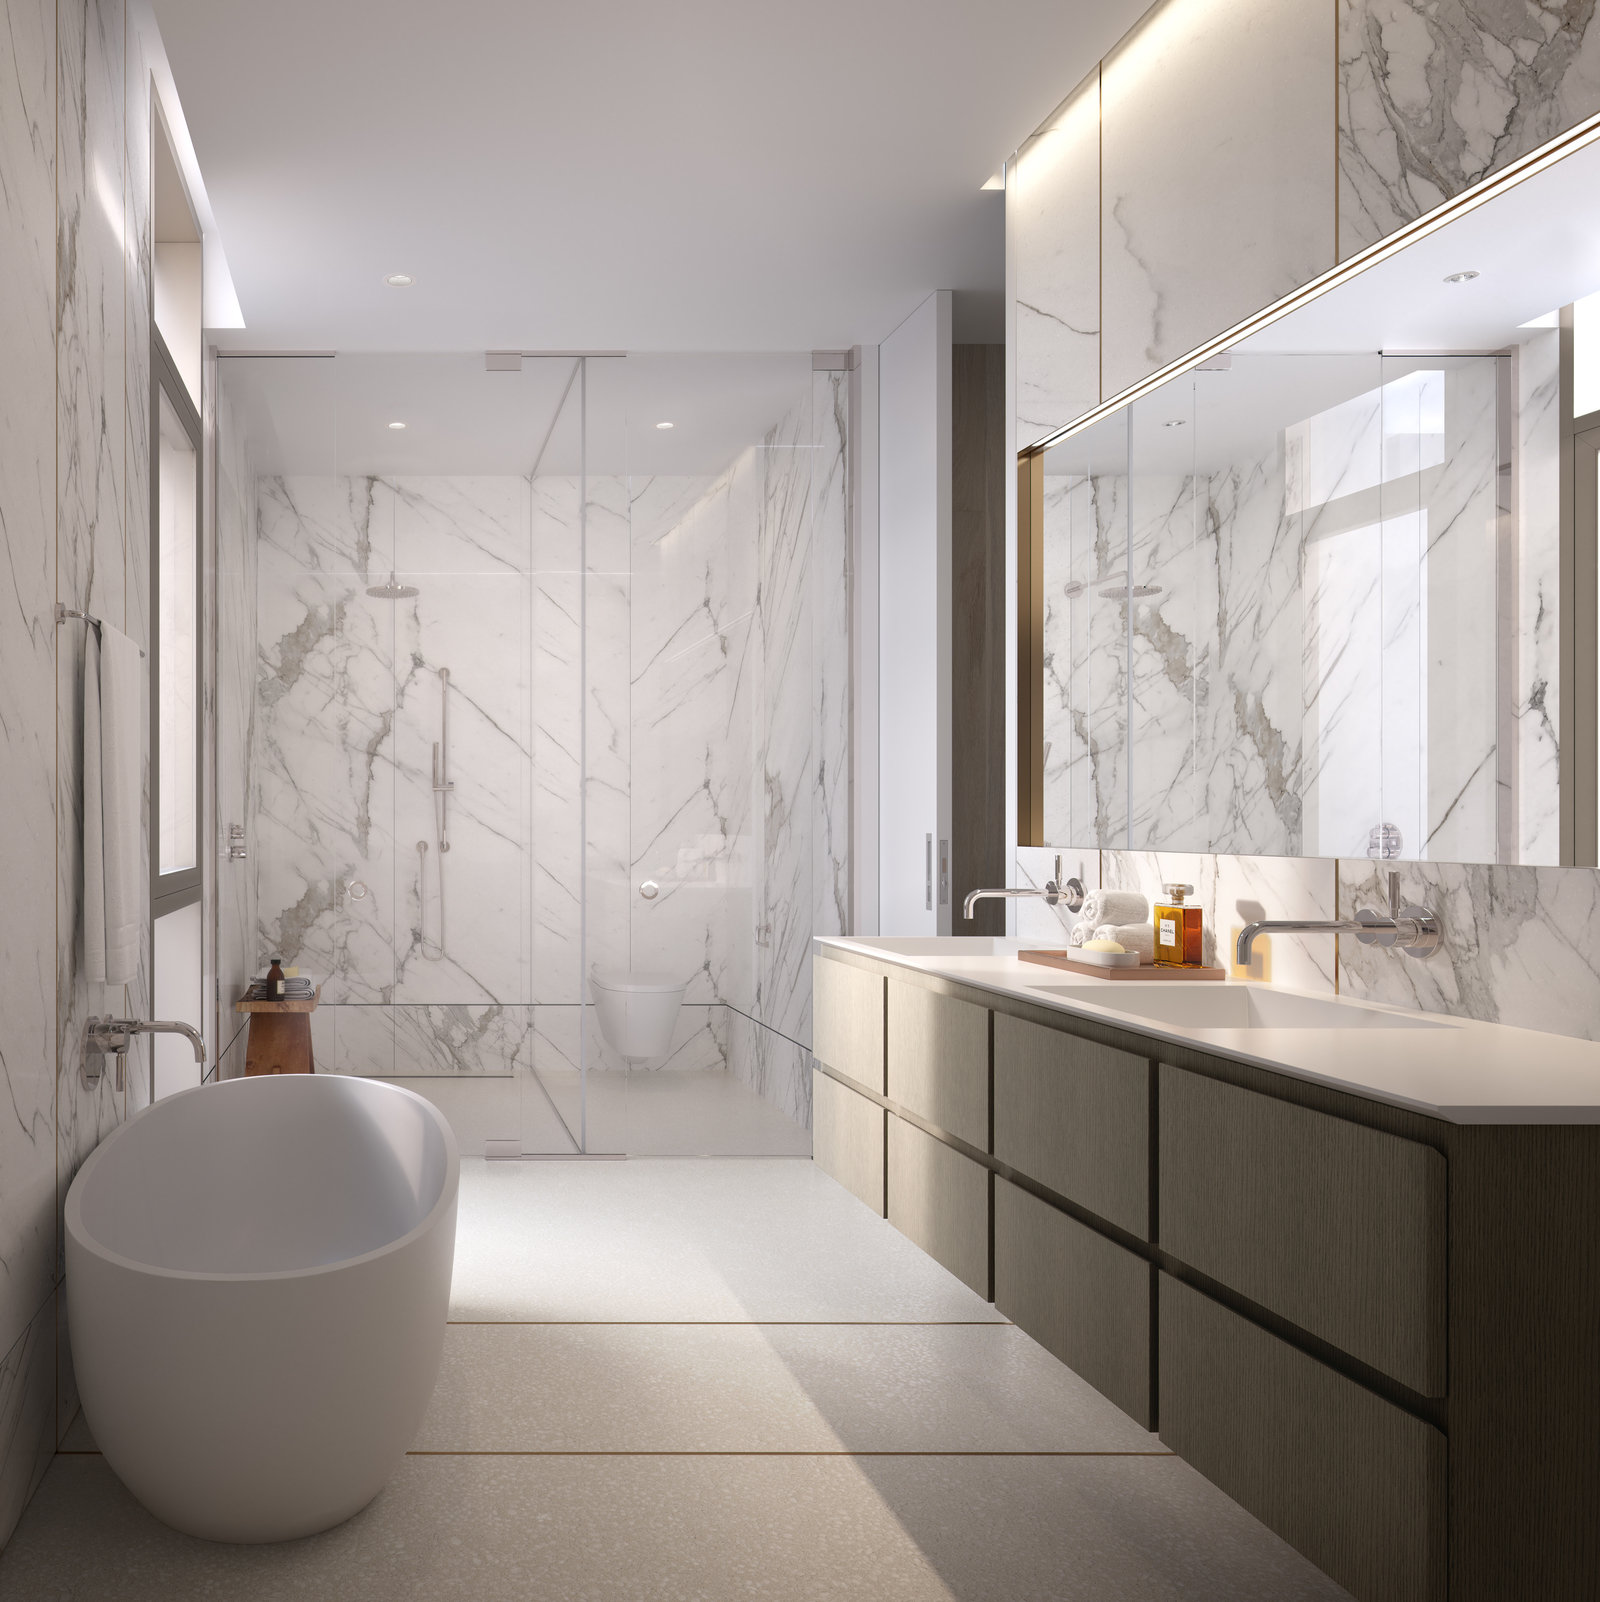 Rendering of bathroom at 80 east 10th street with MEP-FP engineering provided by 2L Engineering